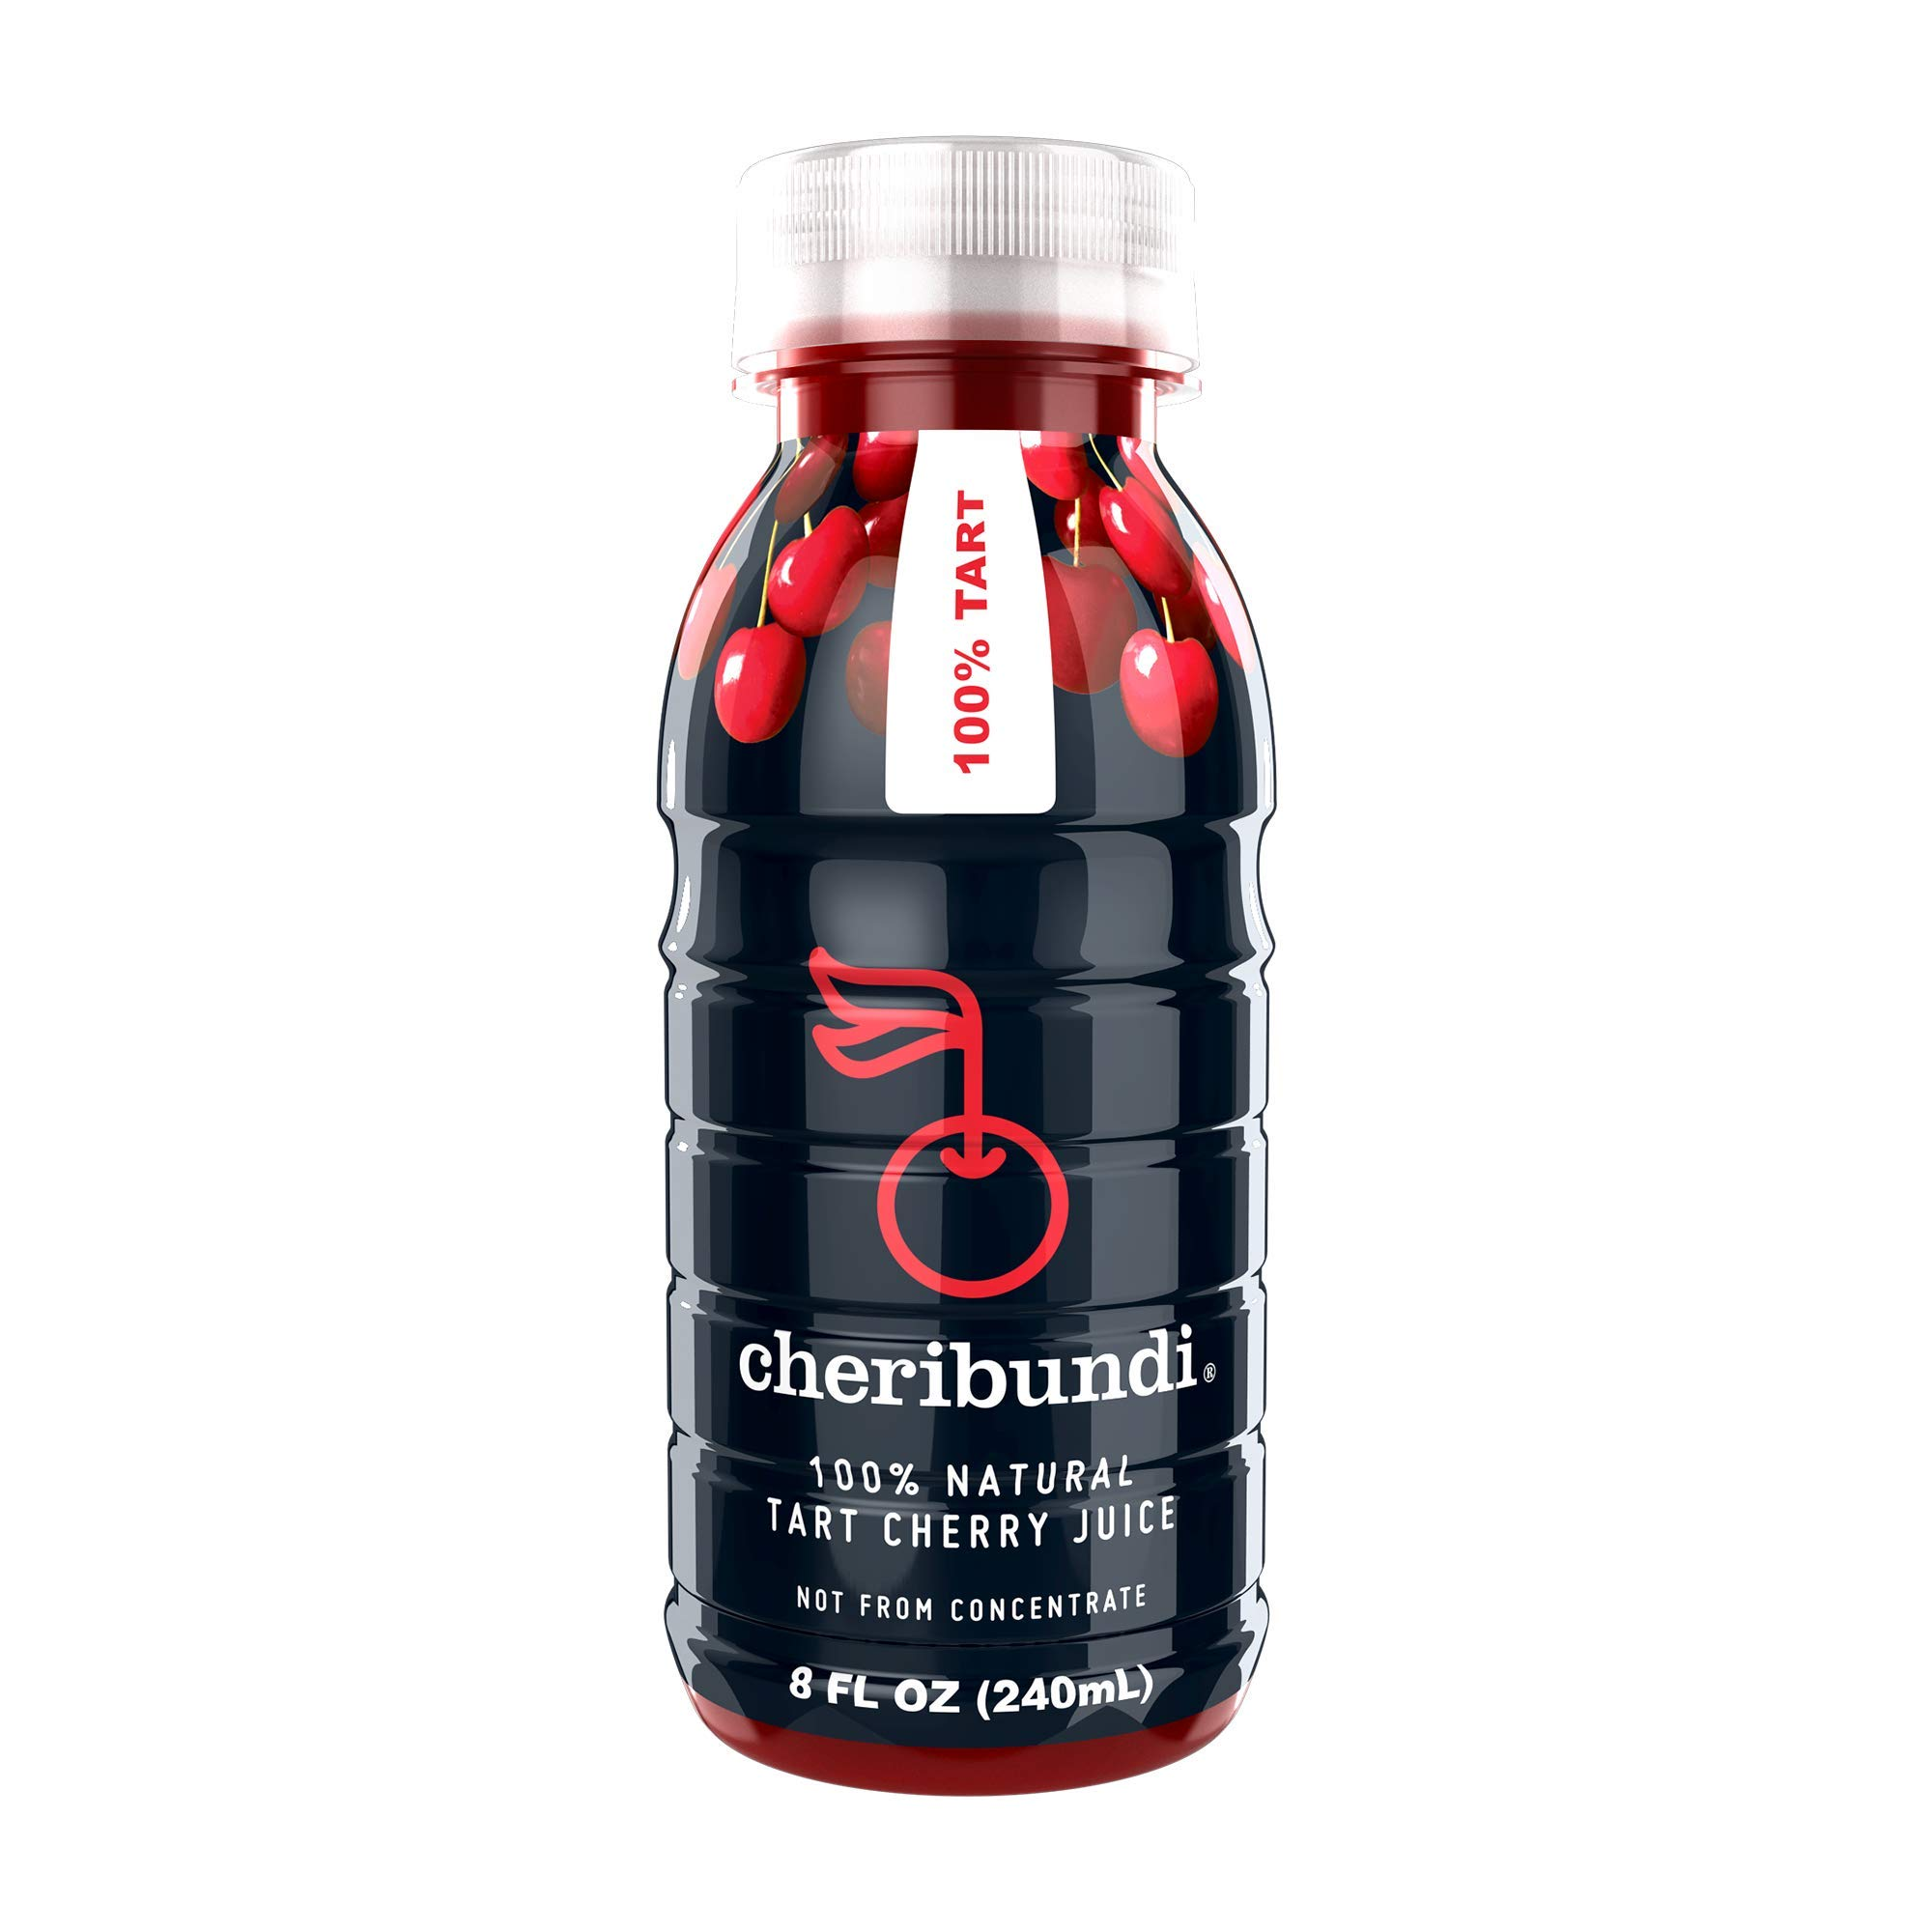 Cheribundi 100% Tart Cherry Juice – 60 Tart Cherries and 100 Calories Per 8oz. Serving, One Ingredient, All of the Benefits, Reduce Soreness, Recover Faster, Boost Immunity and Improve Sleep